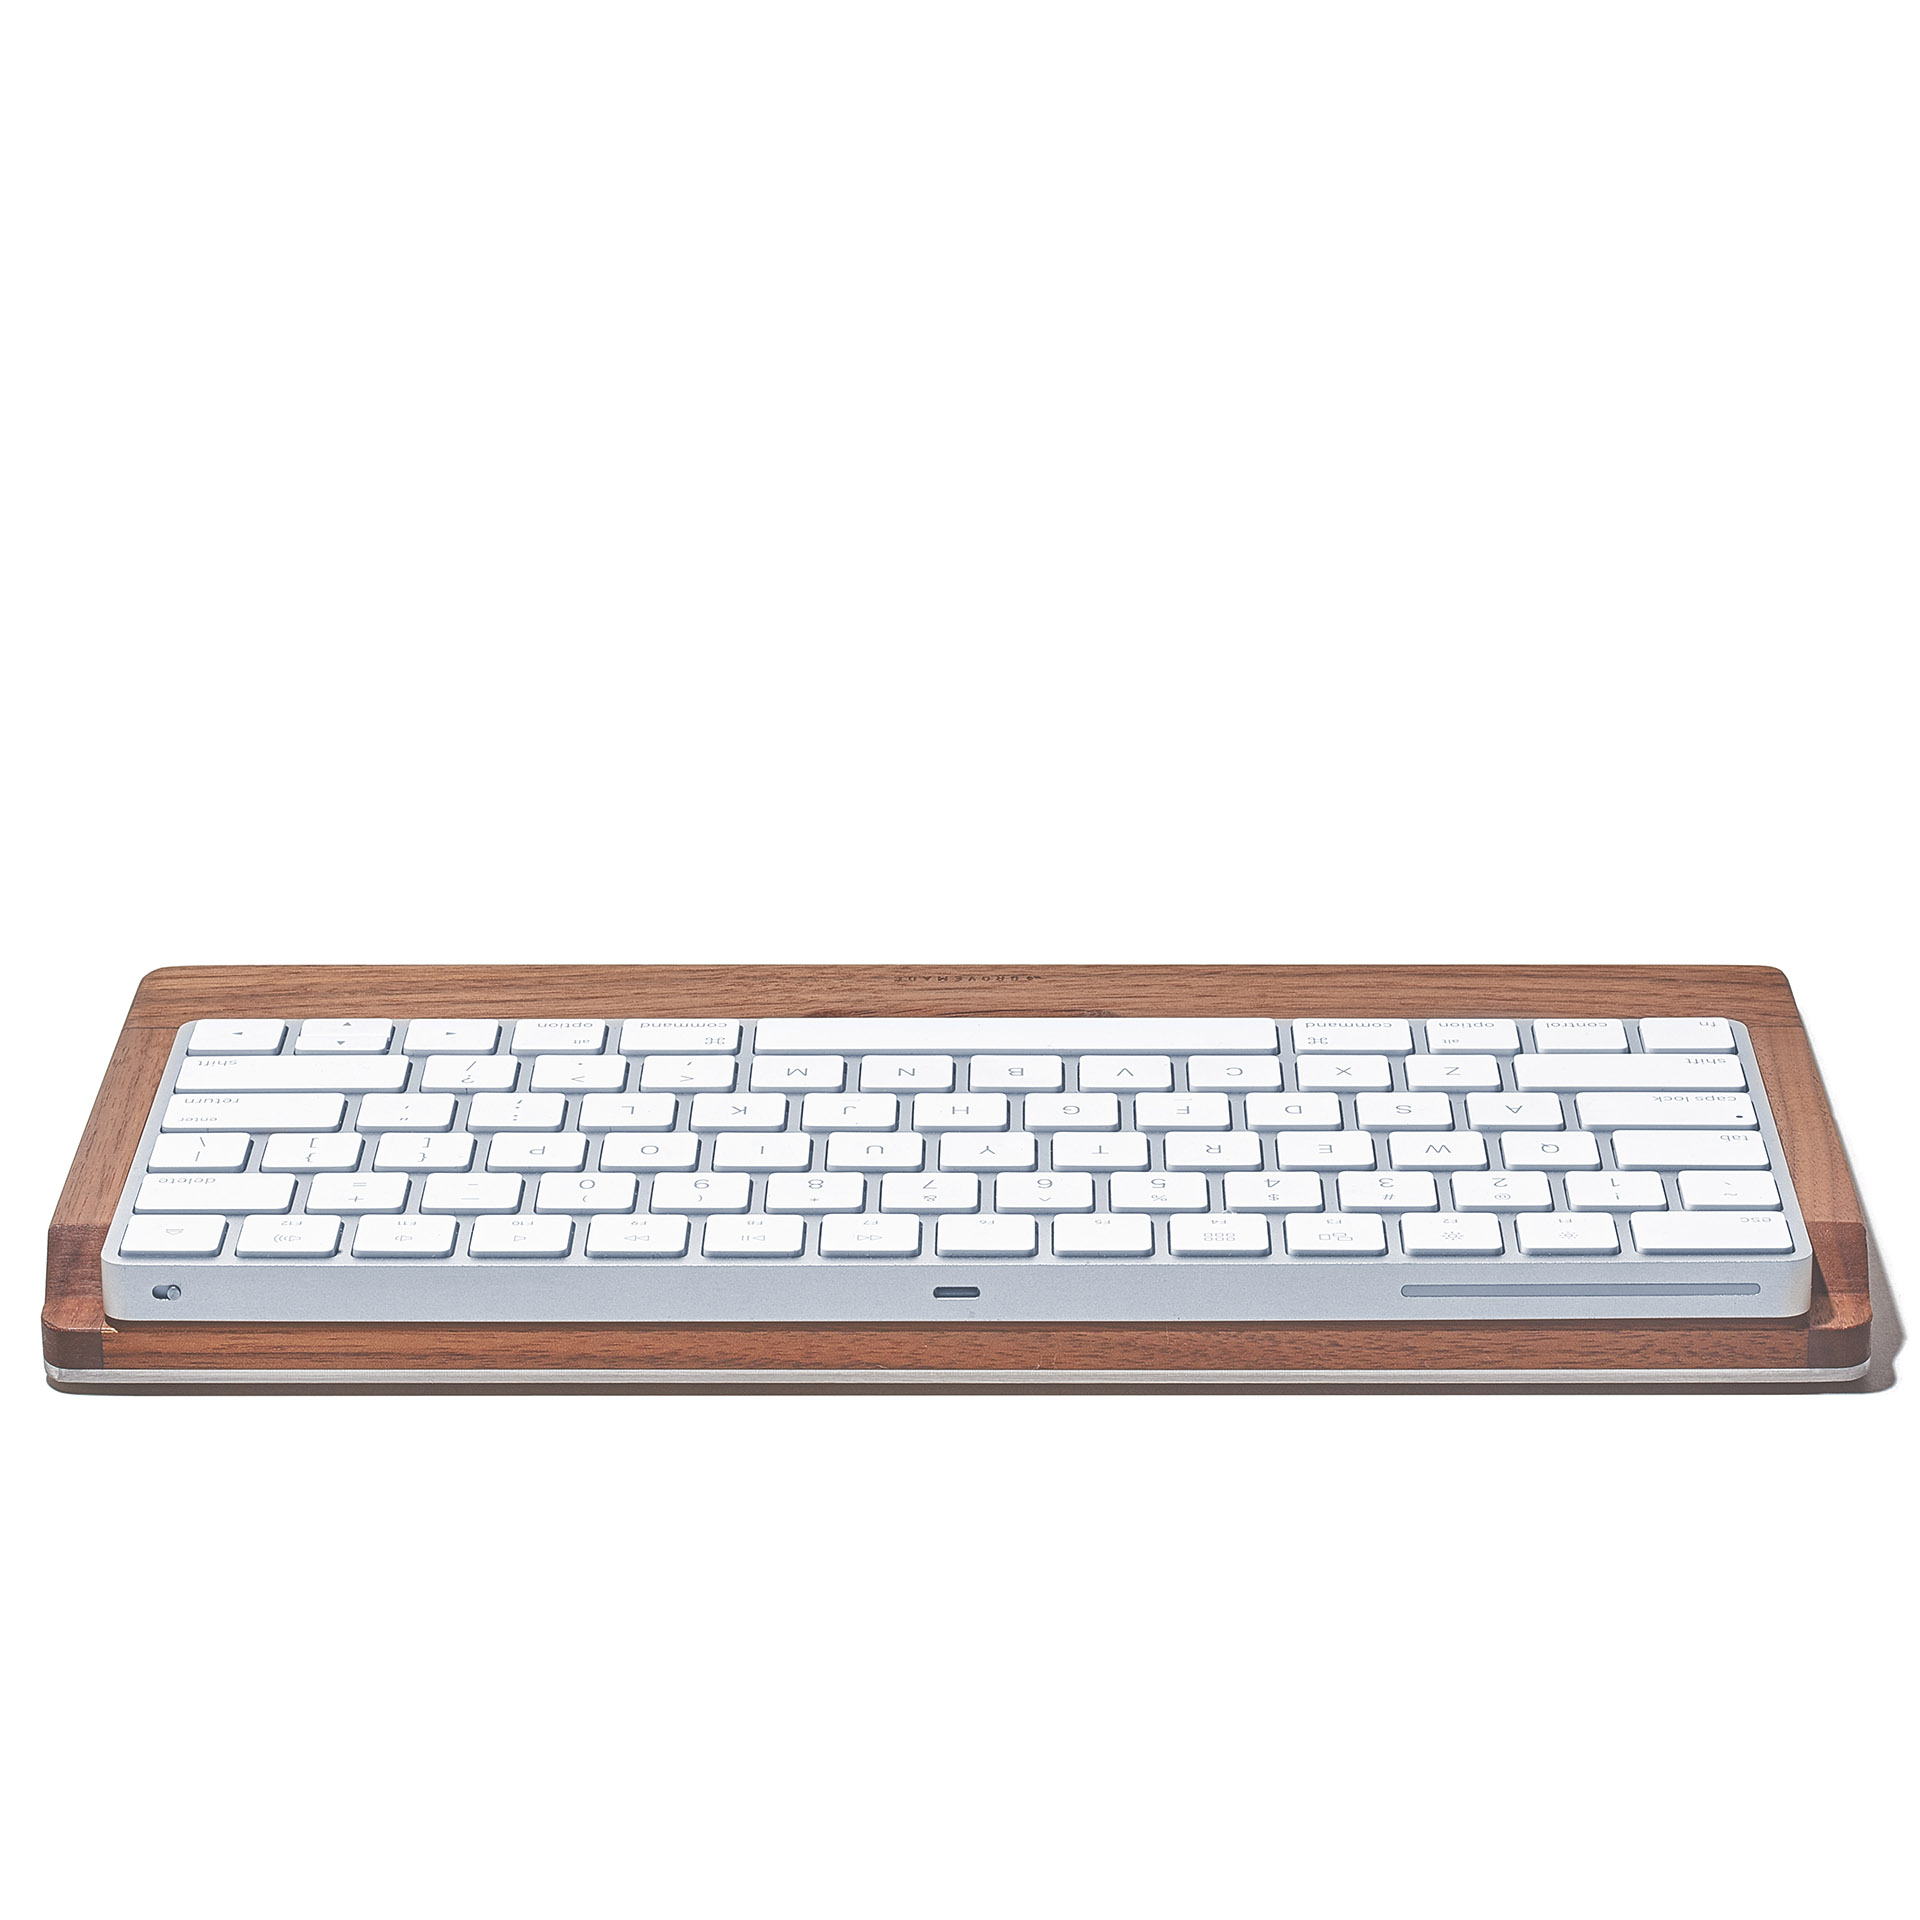 Walnut Keyboard Tray - APPLE-MAGIC-KEYBOARD-OCTOBER-2015